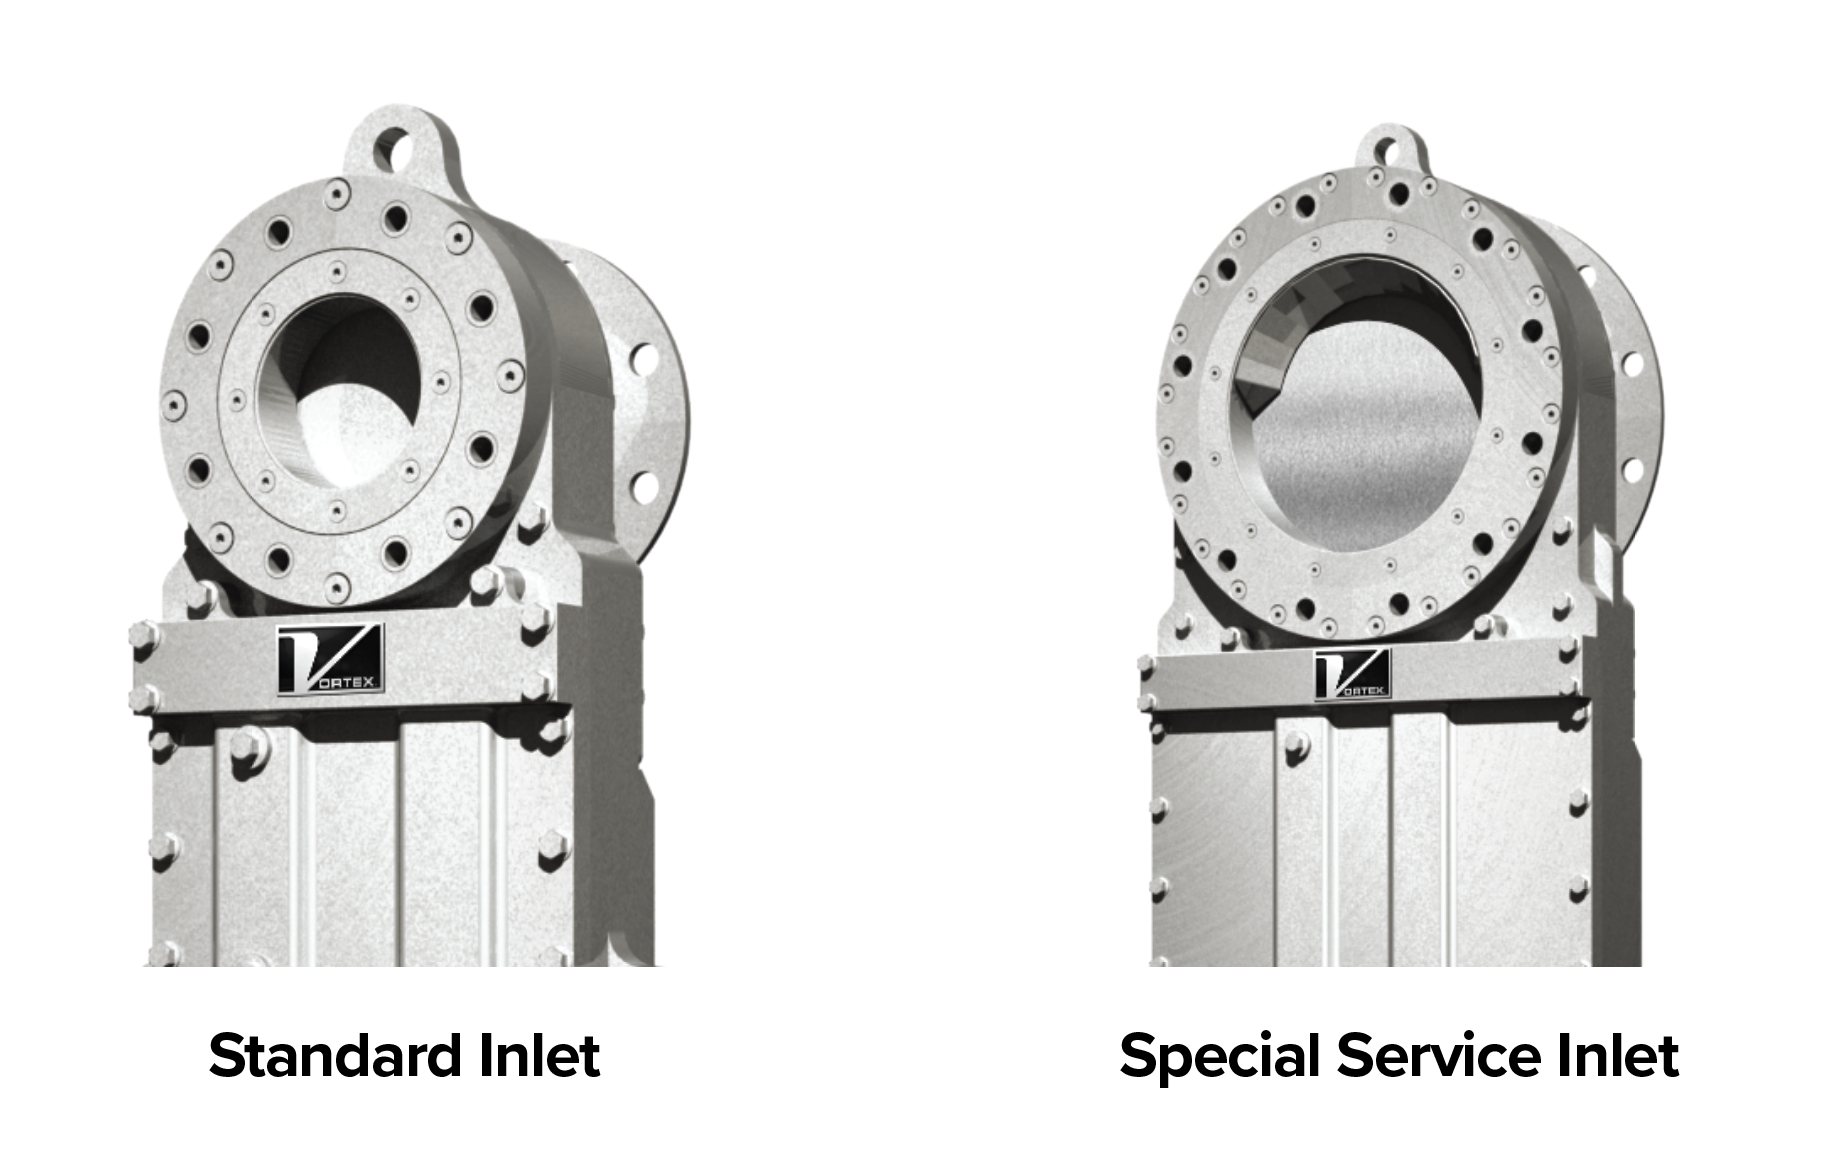 HDP Options. 1. Standard Inlet, 2. Special Service Inlet